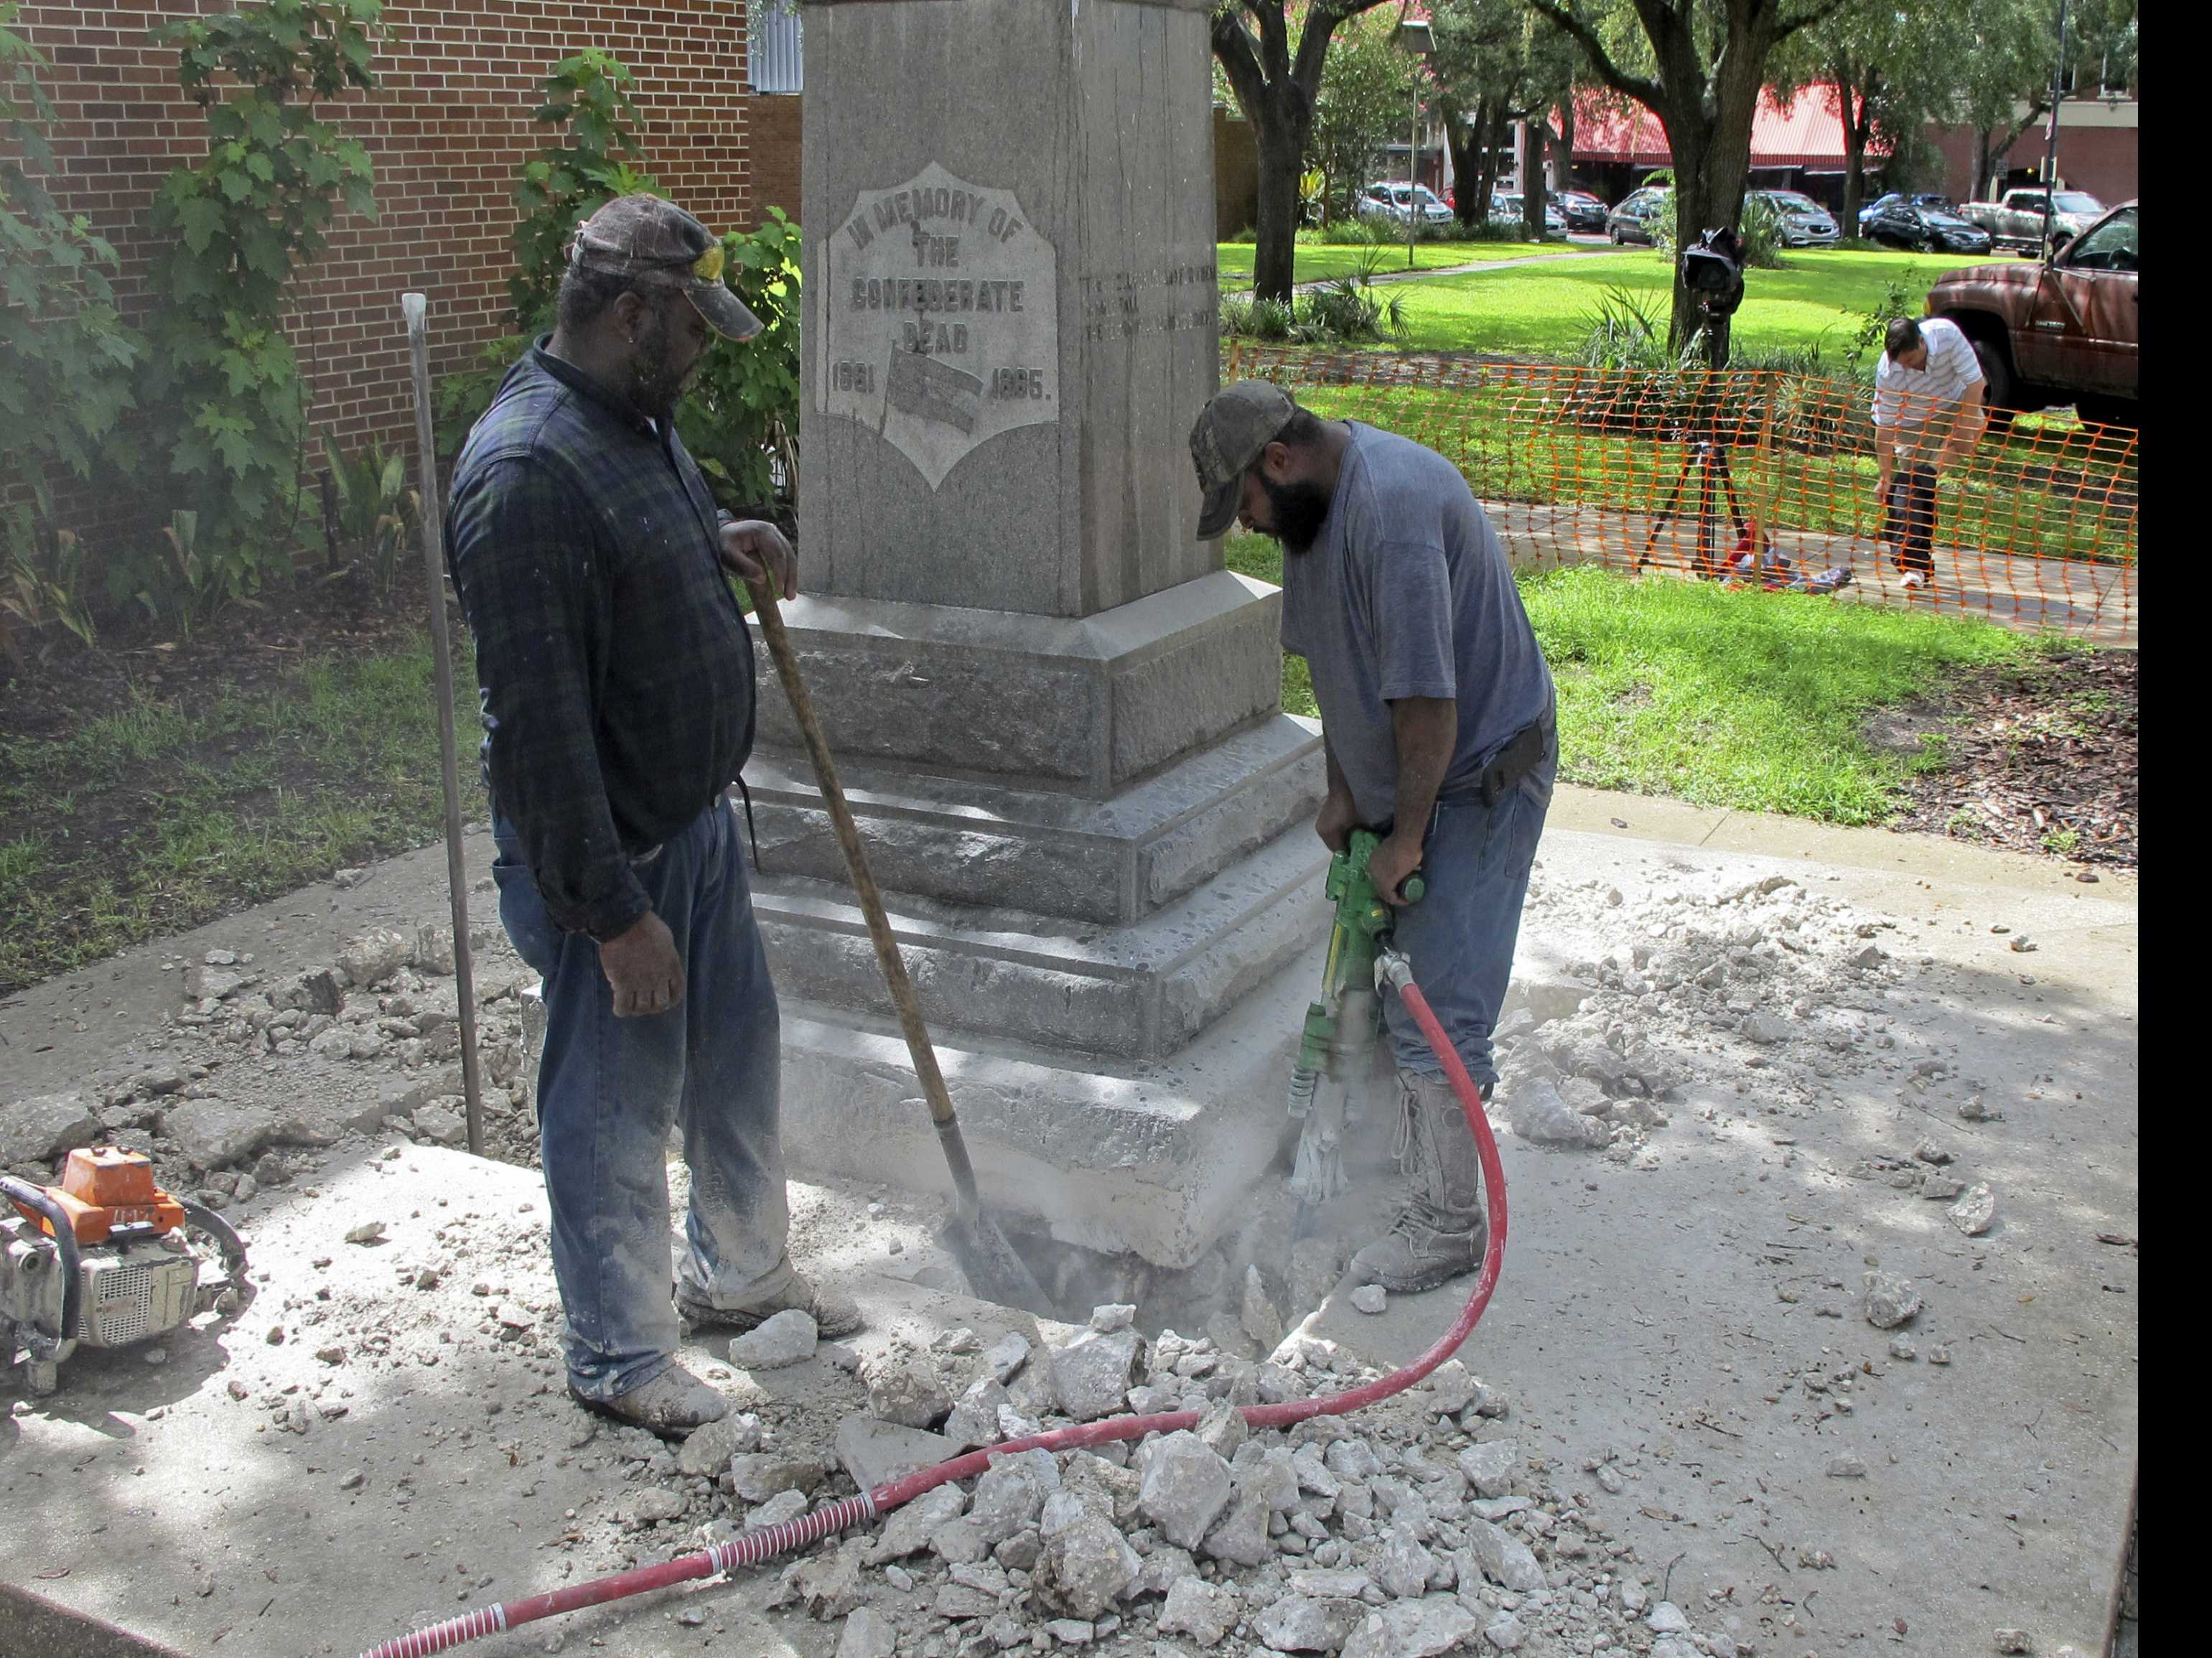 Deadly Rally Accelerates Removal of Confederate Statues